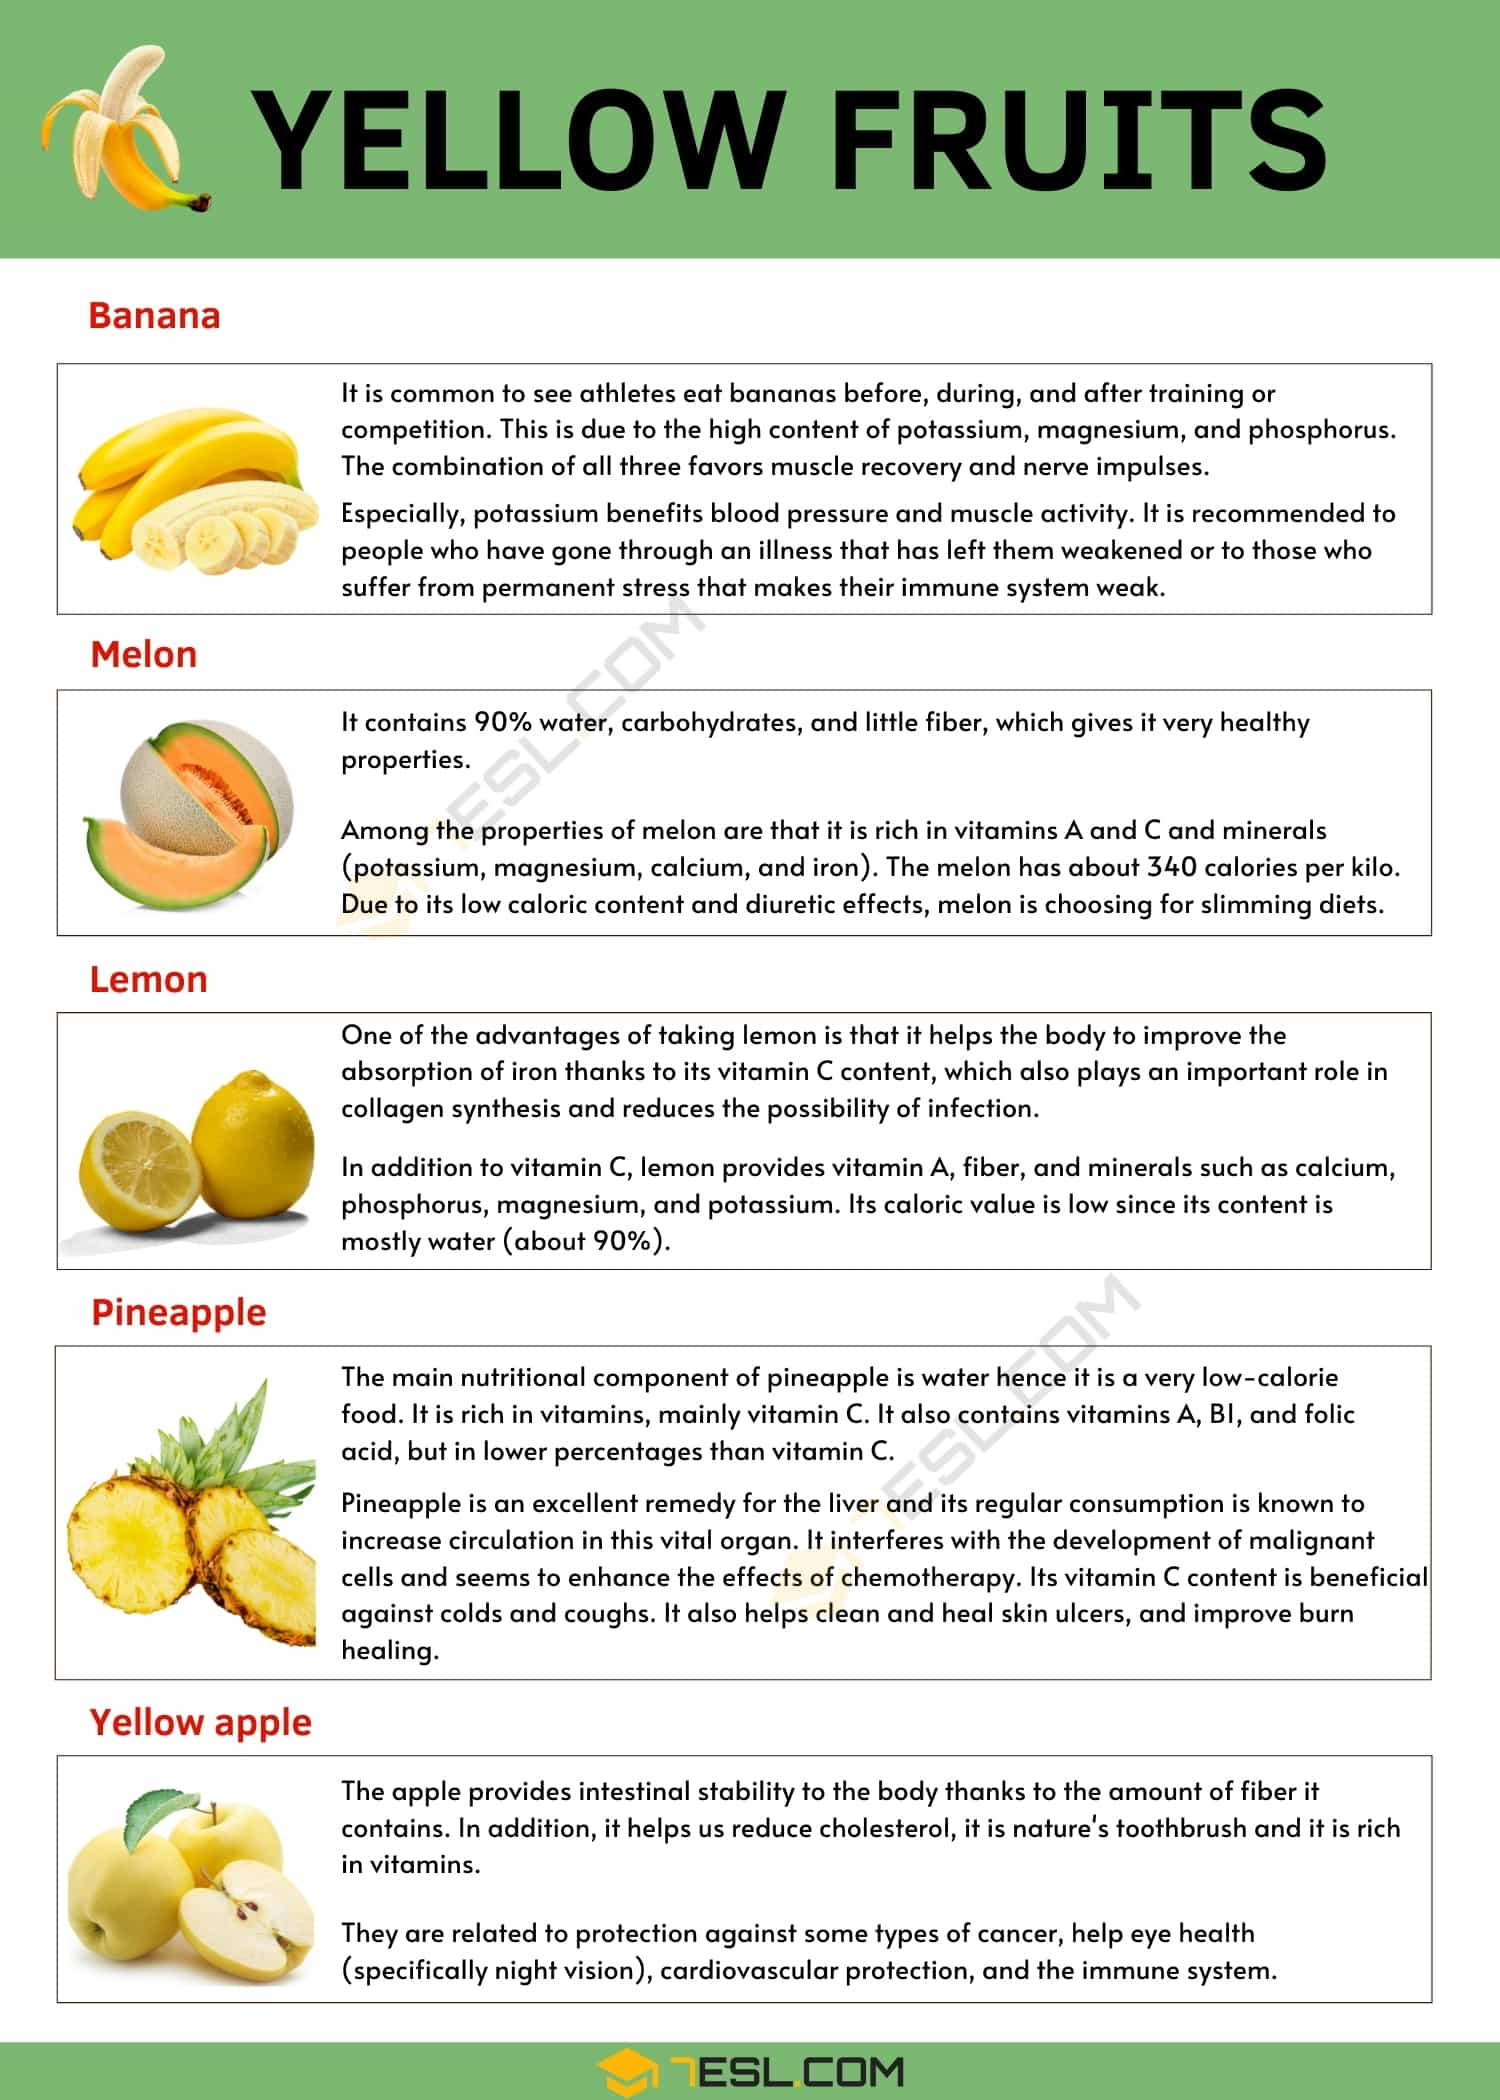 Yellow Fruits| List of Yellow Fruits with Amazing Health Benefits